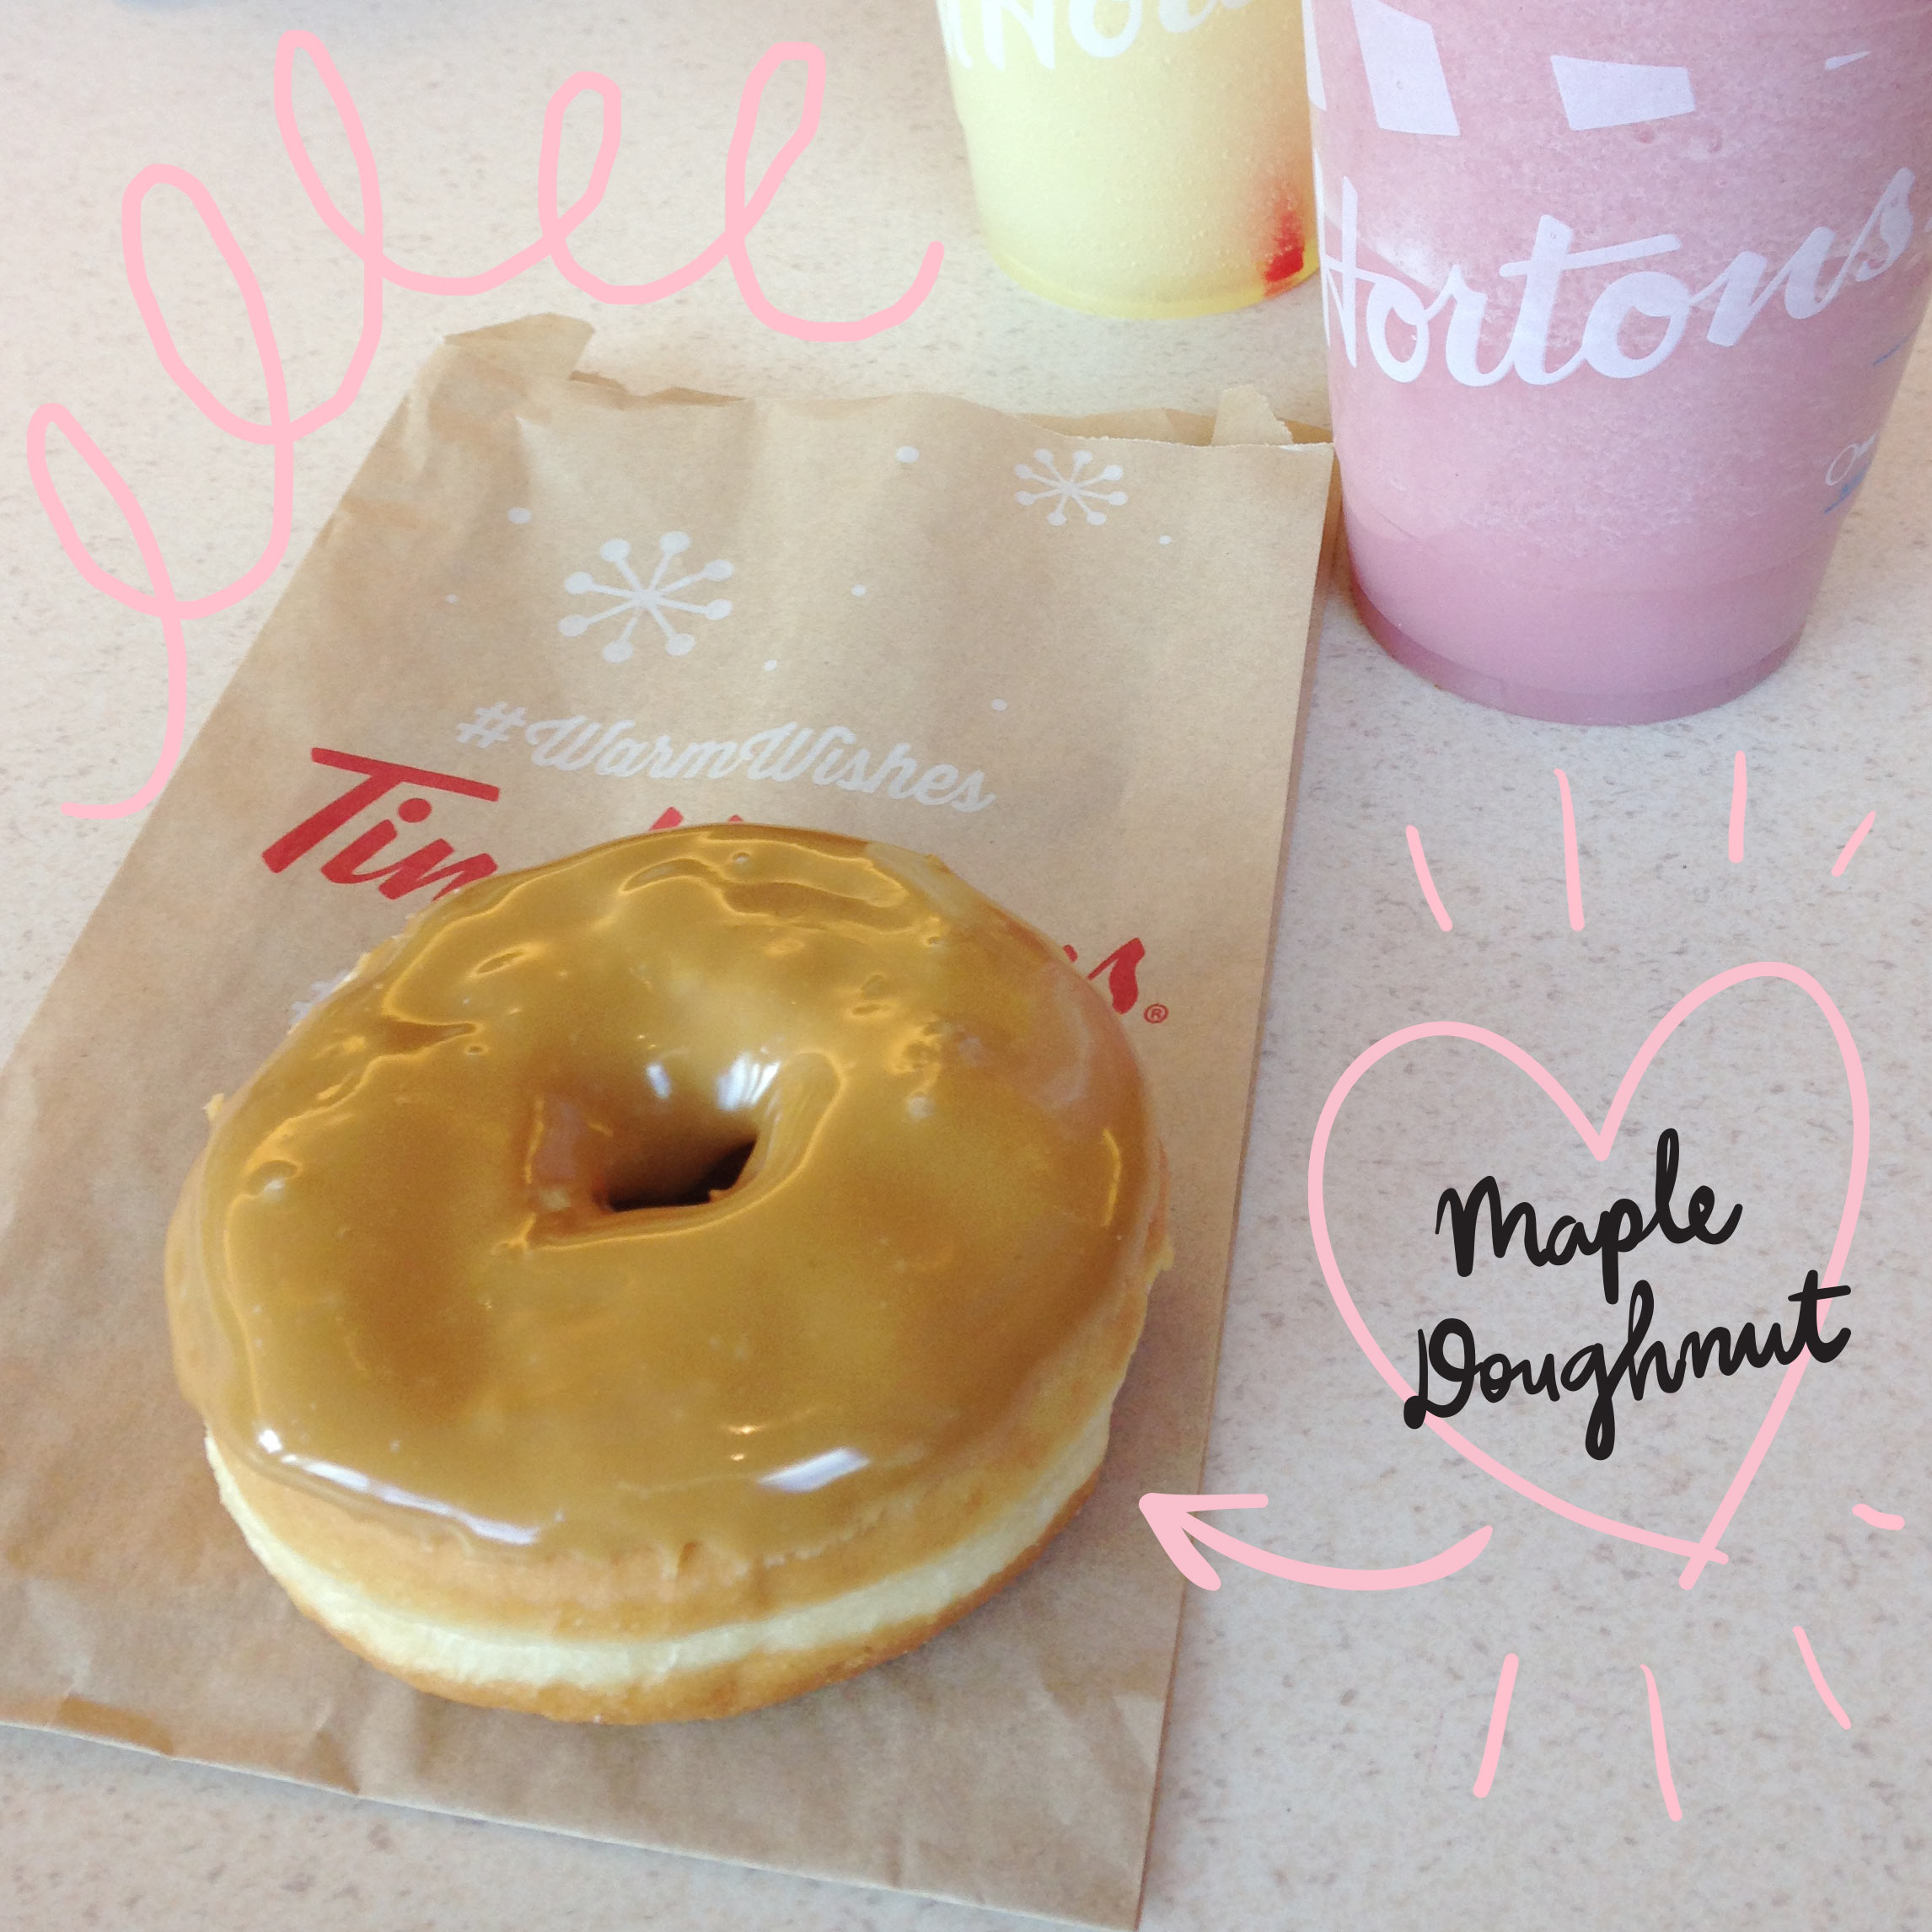 Maple-Doughnut.jpg